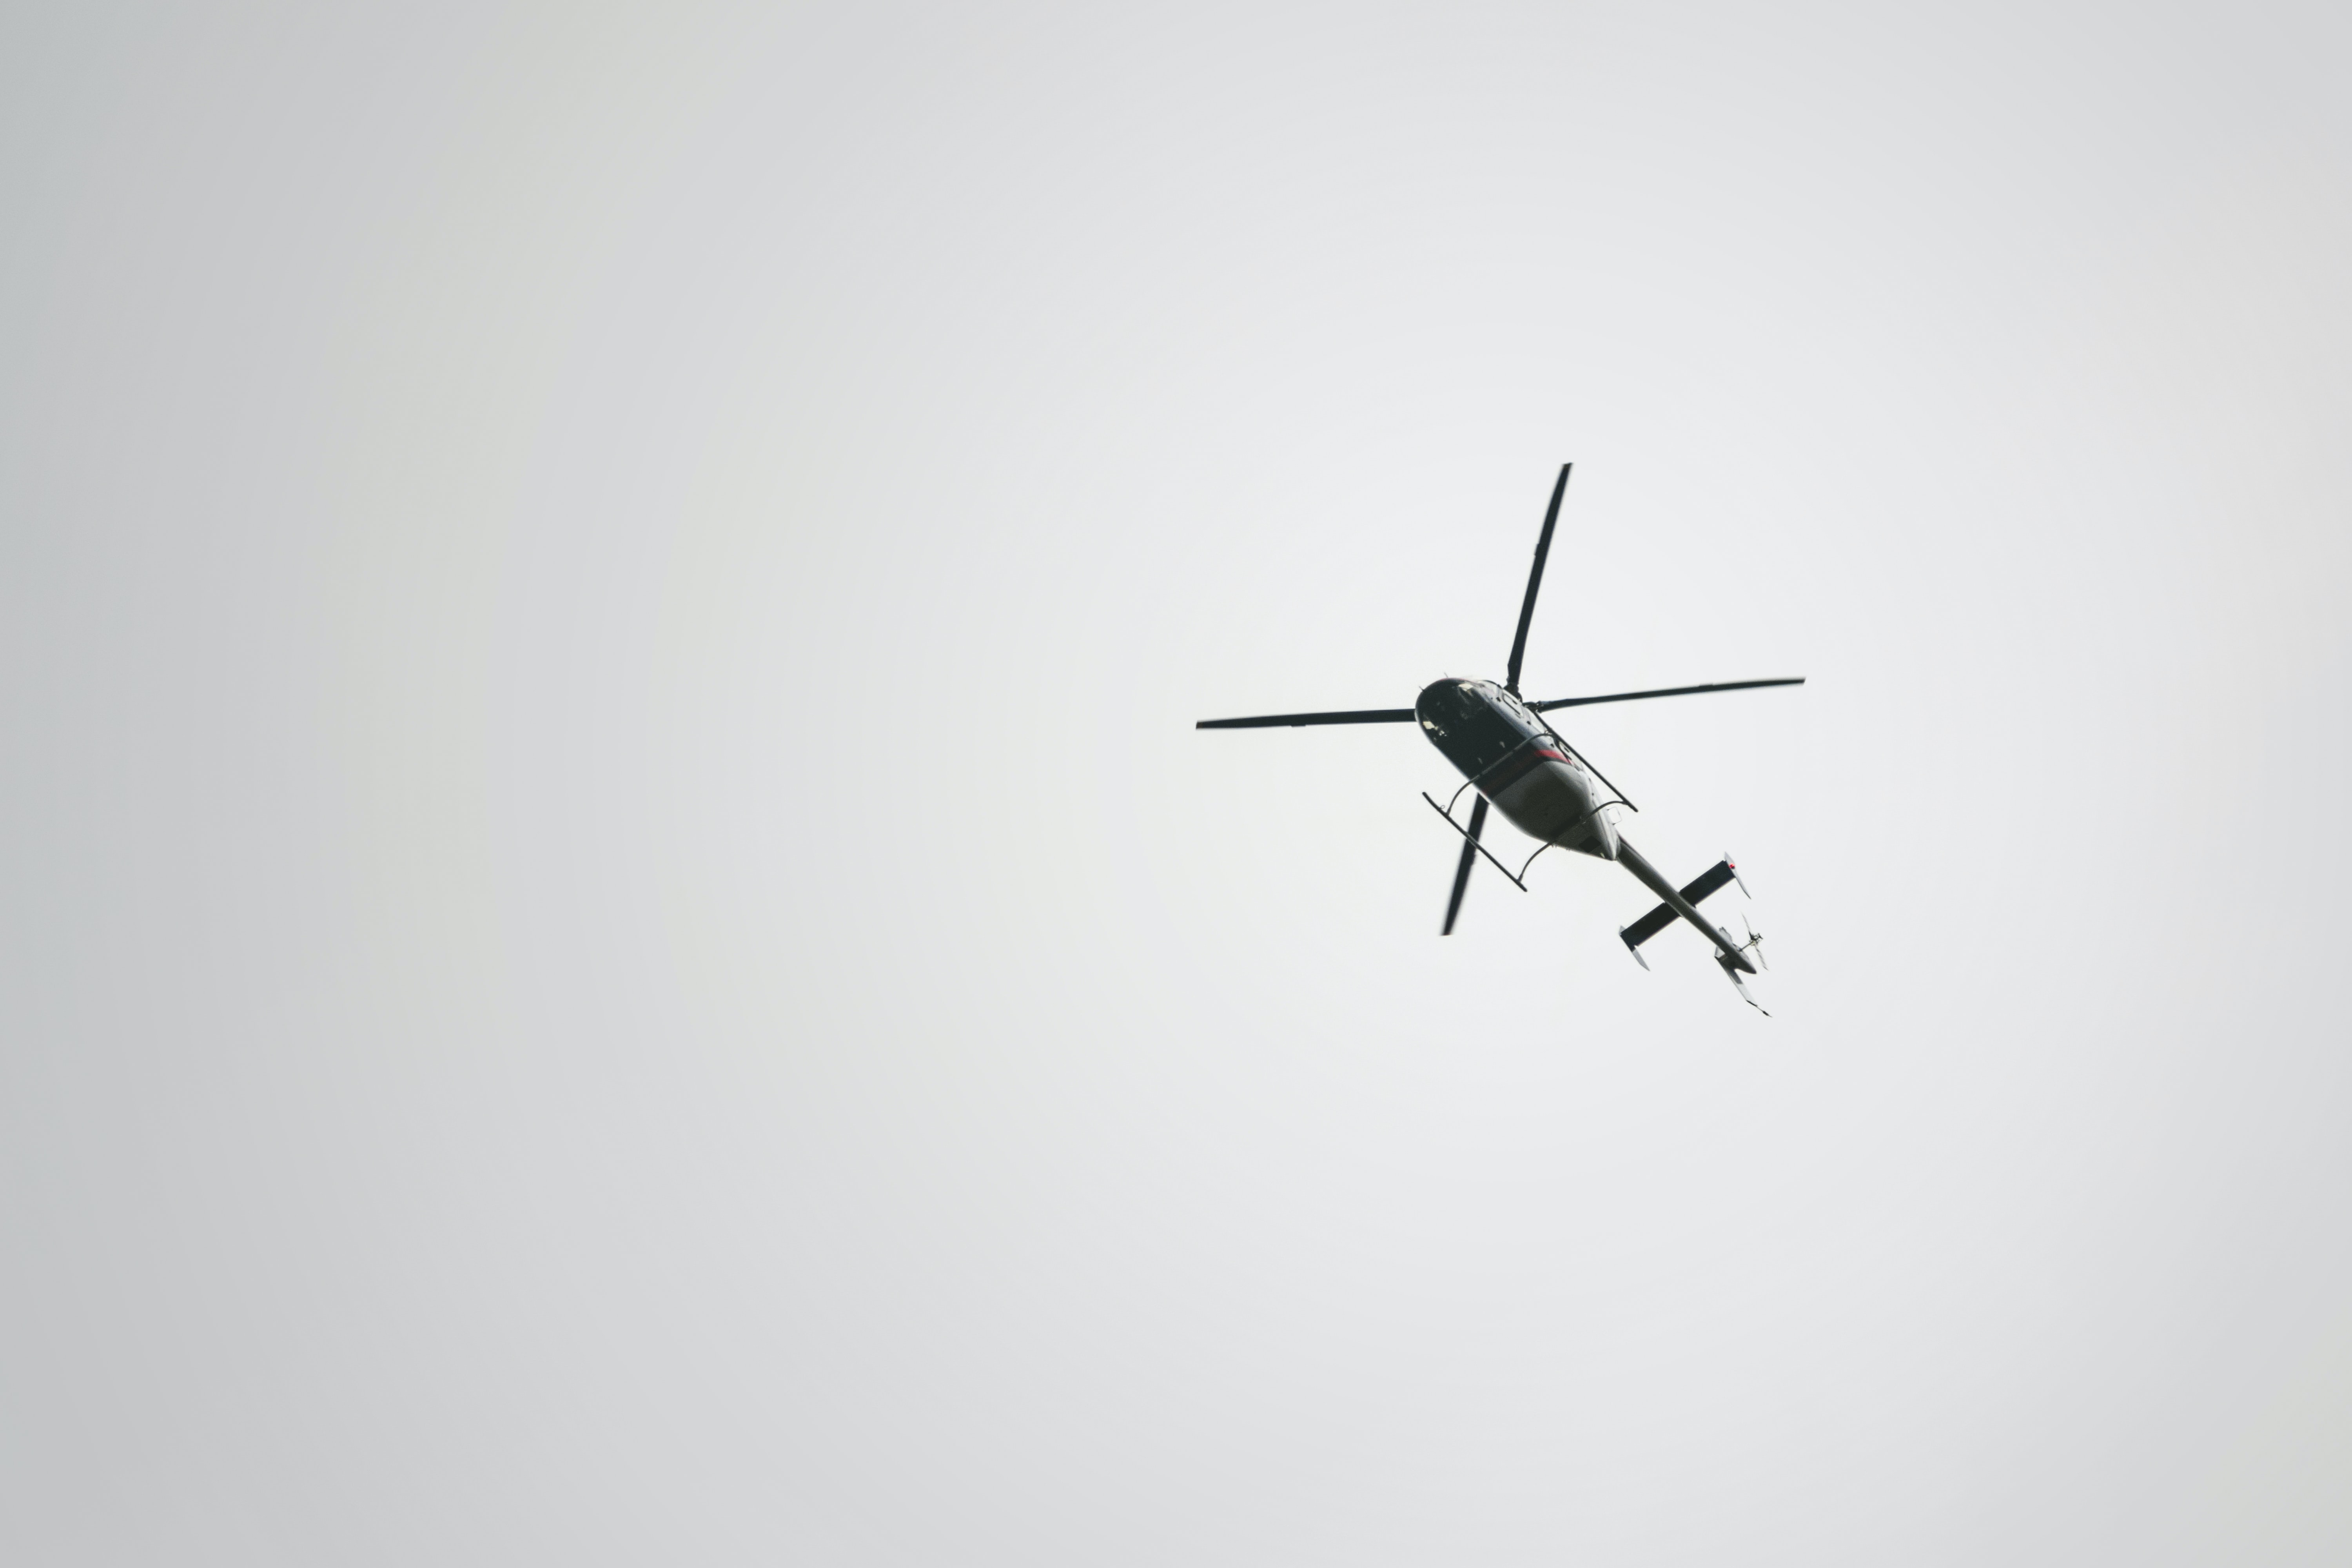 worms-eye-view of flying black helicopter